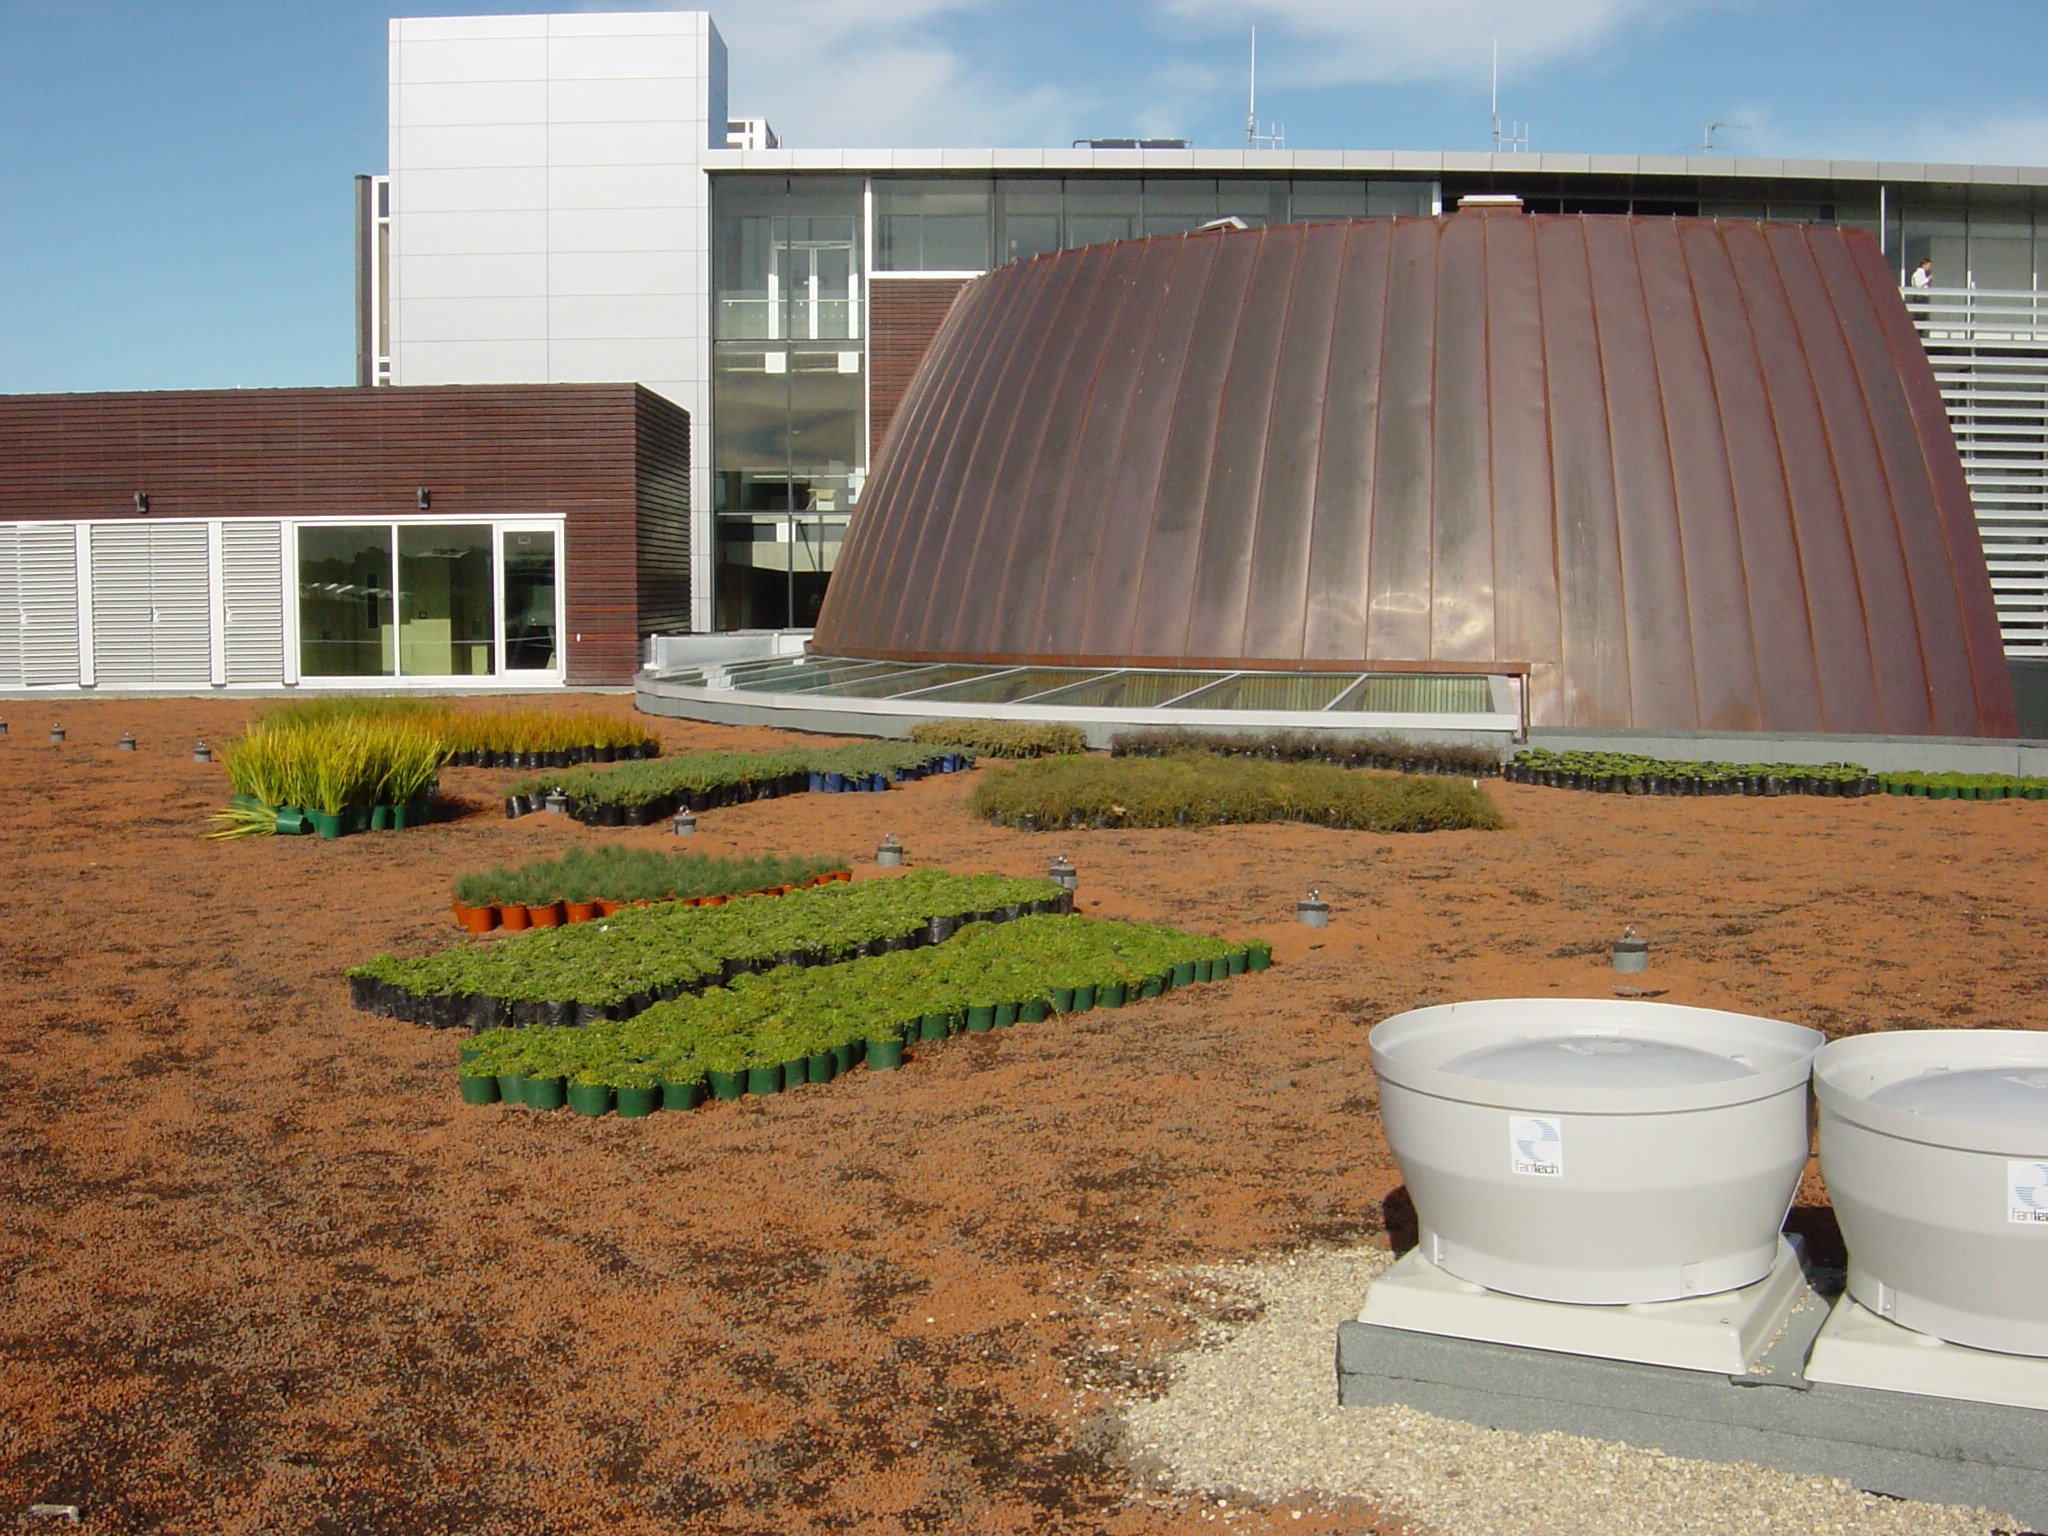 Waitakere Civic Centre Greenroof